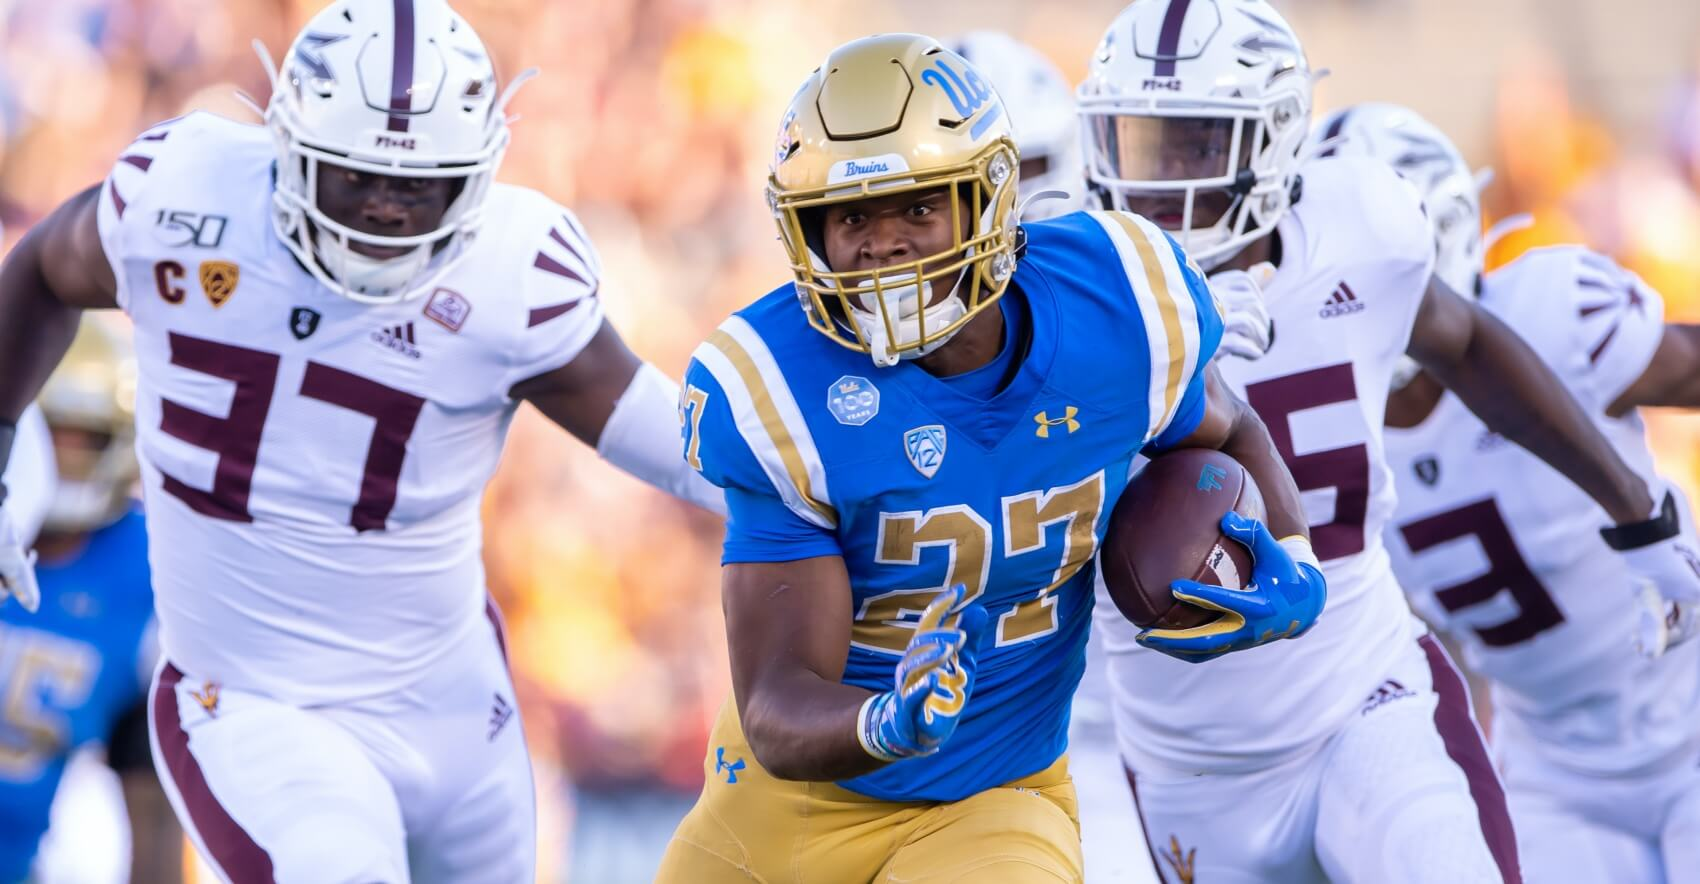 2020 NFL Draft Profile: Joshua Kelley (Fantasy Football)